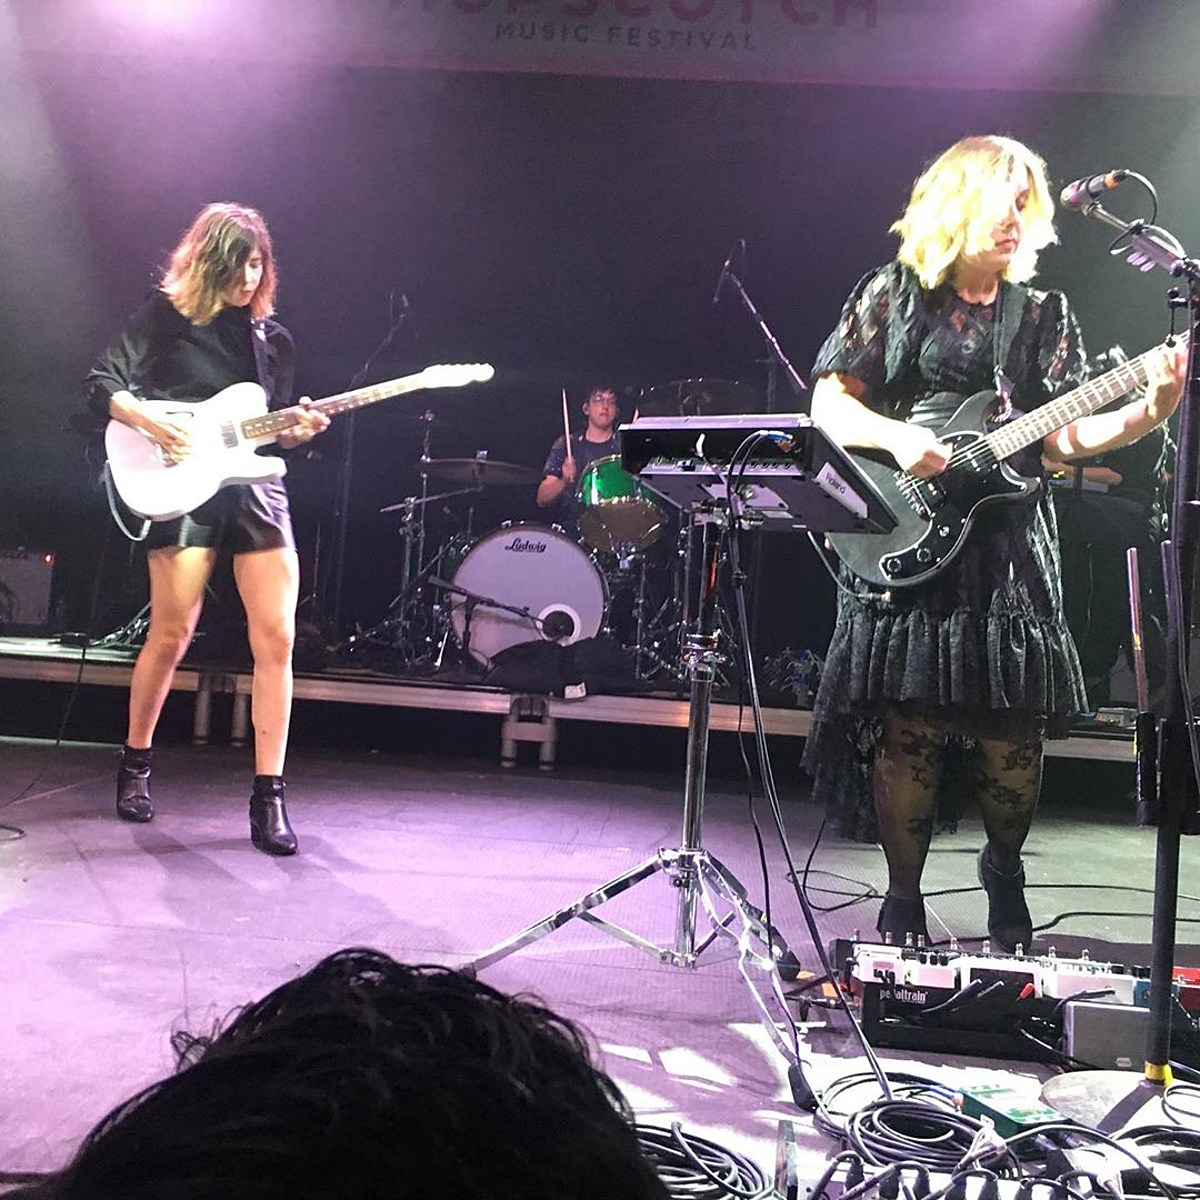 Sleater-Kinney's new drummer is Angie Boylan (watch their first show together)